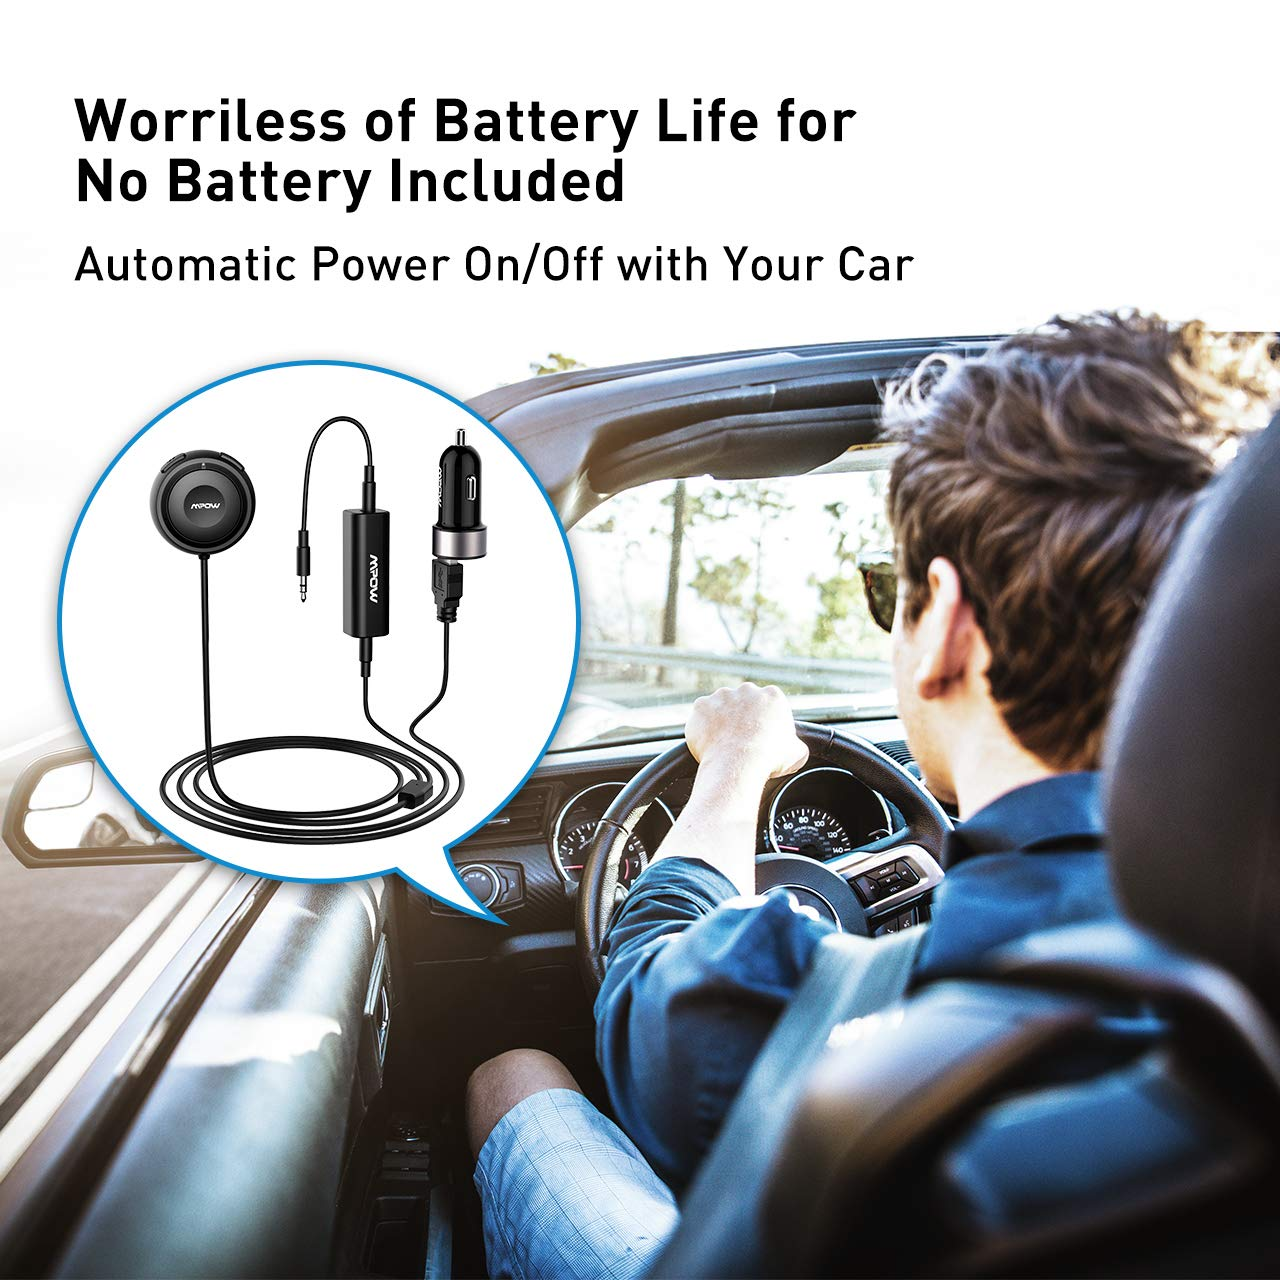 Mpow Bluetooth Receiver Car, Hands-Free Car Kits/Bluetooth AUX Car Adapter 3 in 1 Dual USB Car Charger & Ground Loop Noise Isolator Car Audio System (HFP/HSP/A2DP/AVRCP) by Mpow (Image #5)